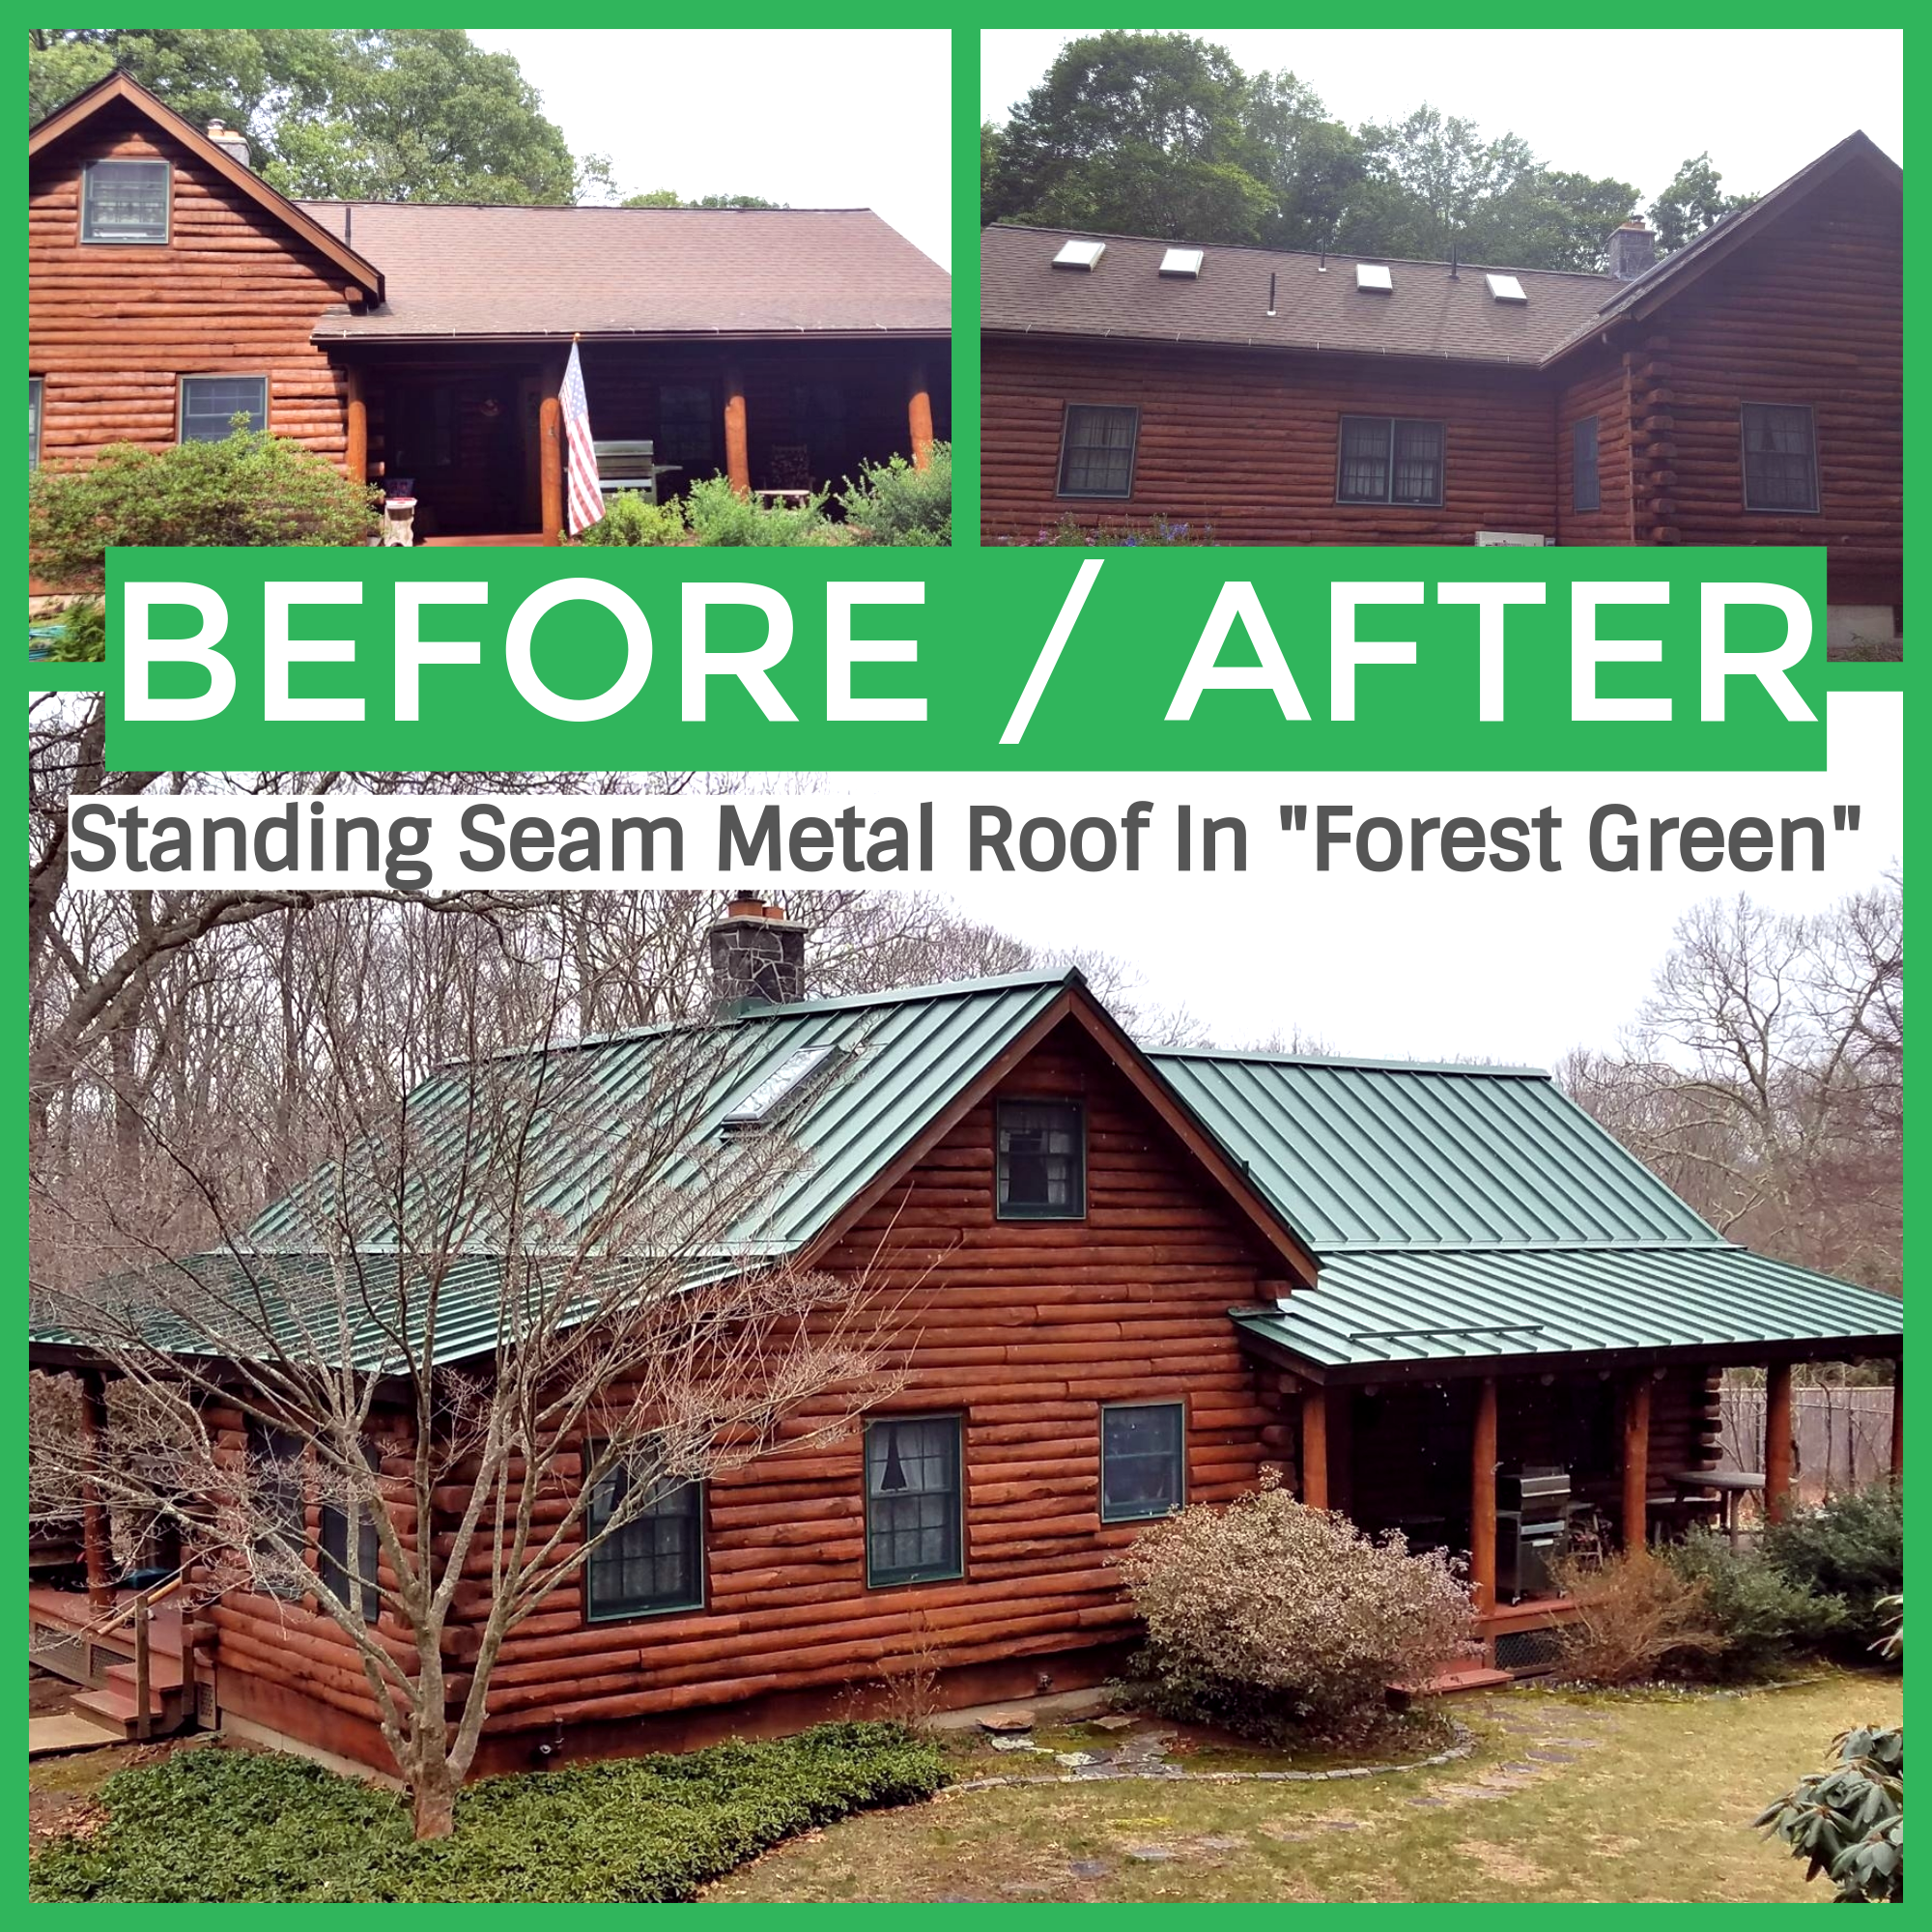 Standing Seam Classic Metal Roofs Llc Stow Ma Green Roof House Metal Roof Standing Seam Metal Roof